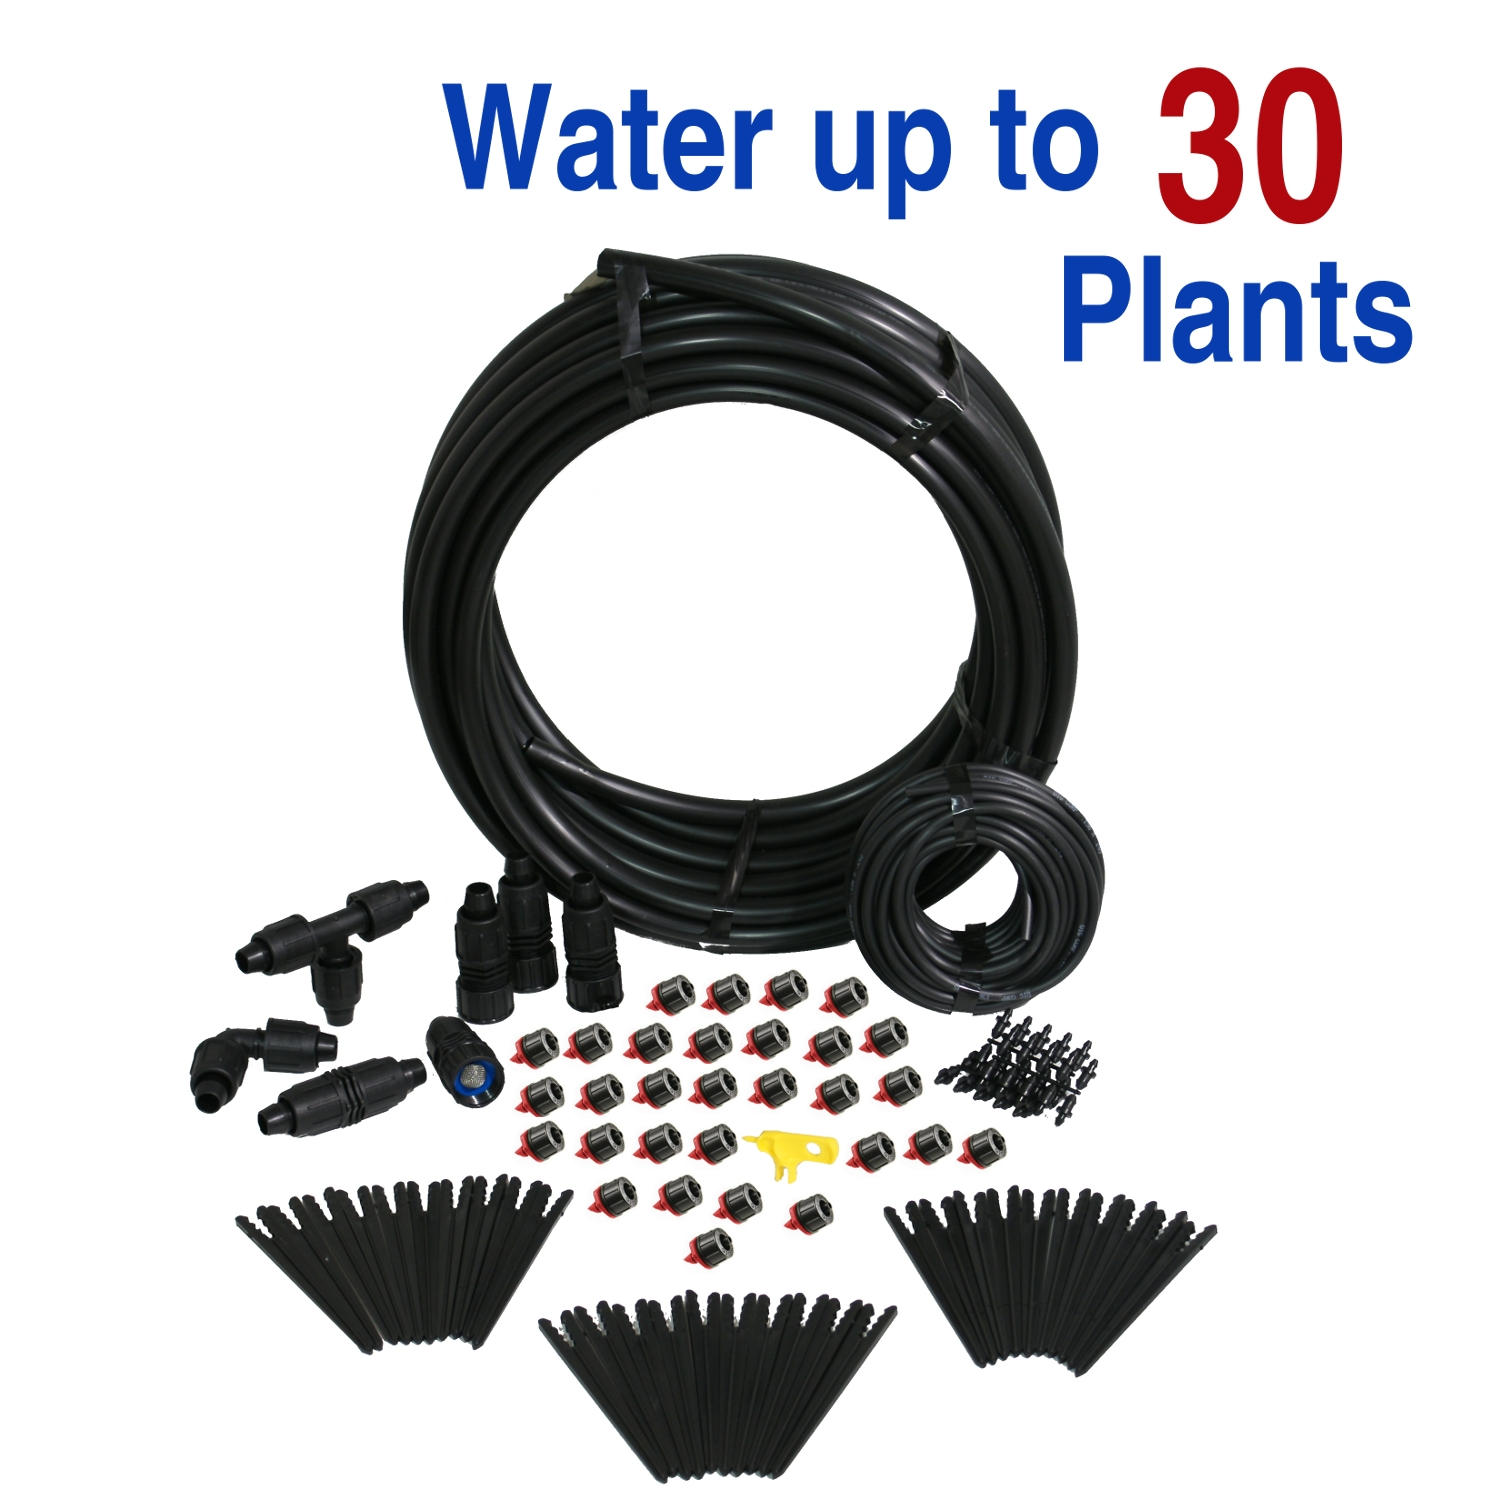 Deluxe Gravity Feed Drip Irrigation Kit for Clean Water